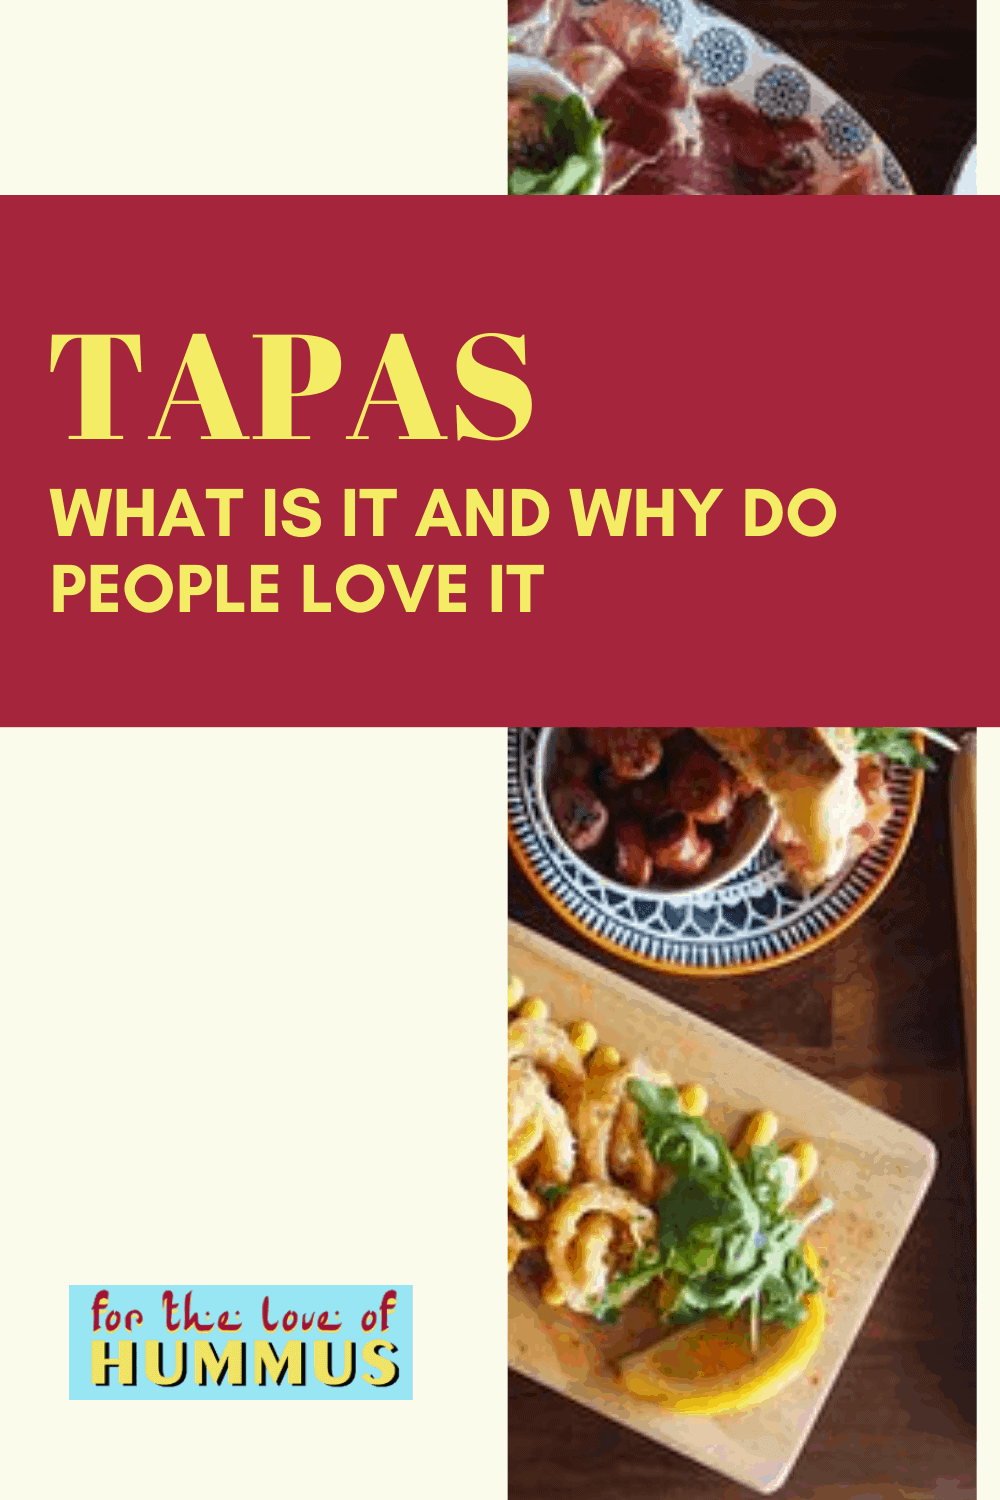 Tapas - For The Love of Hummus